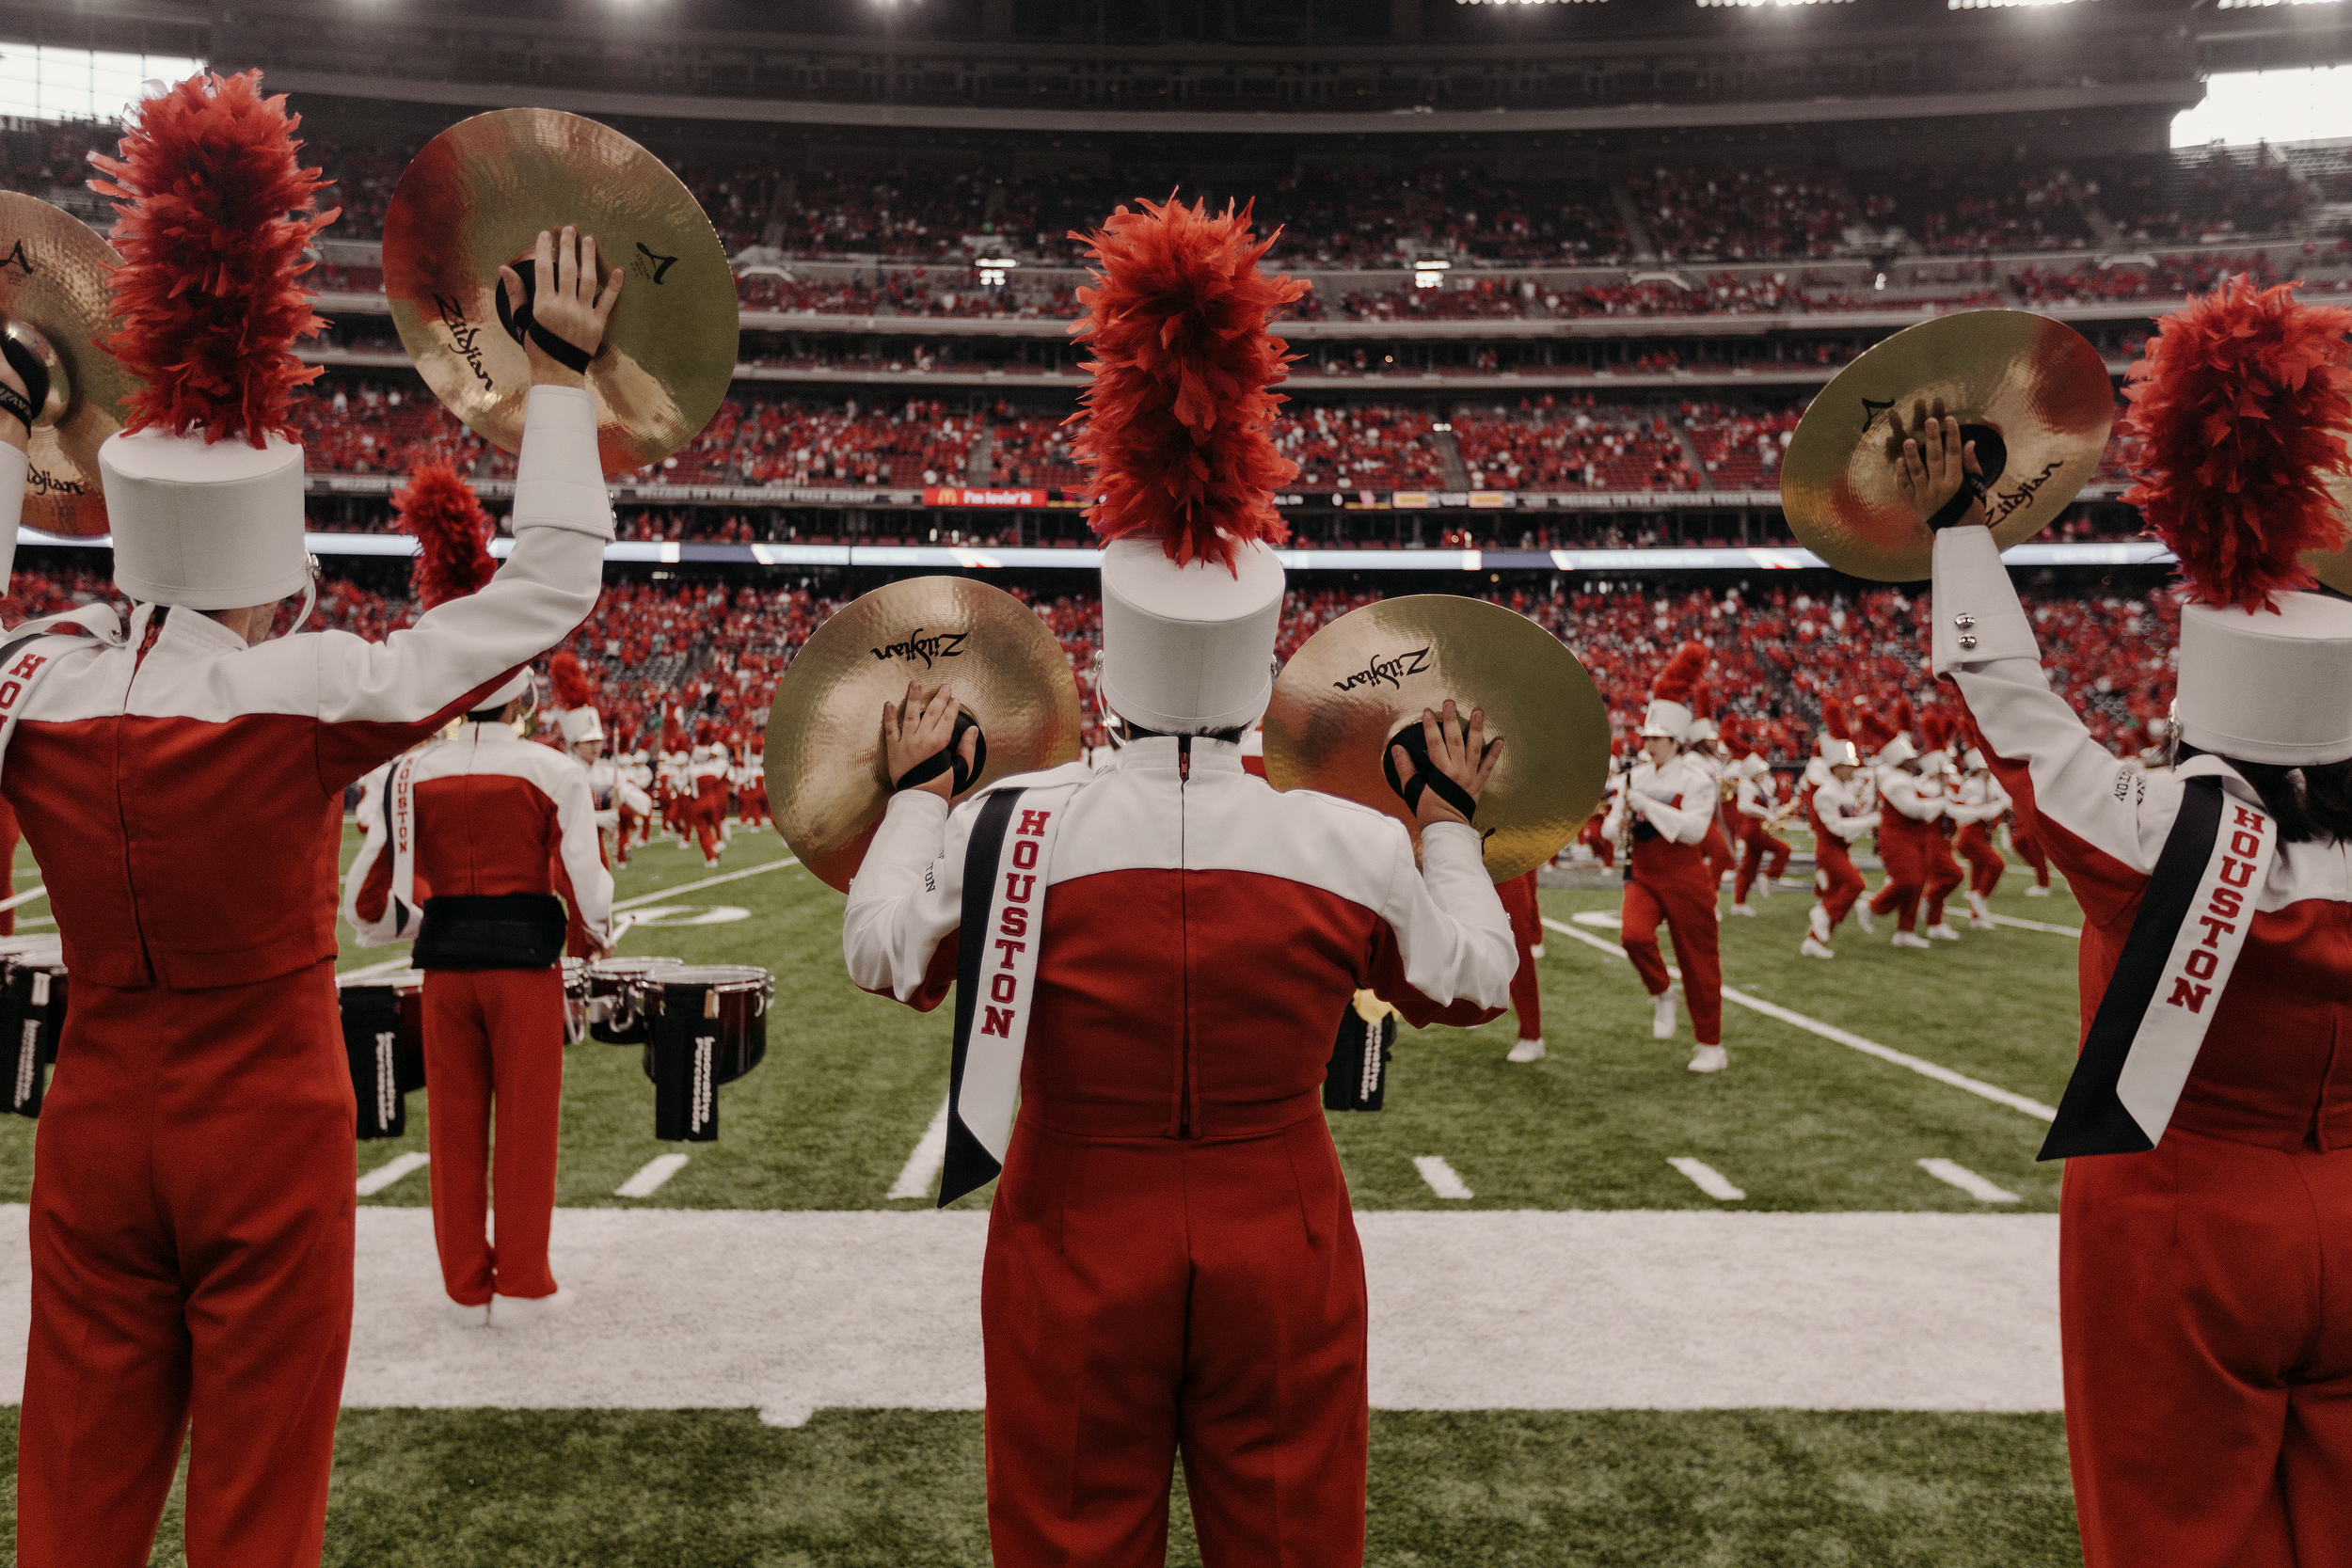 The University of Houston marching band performs prior to the game. Todd Spoth for The New York Times.